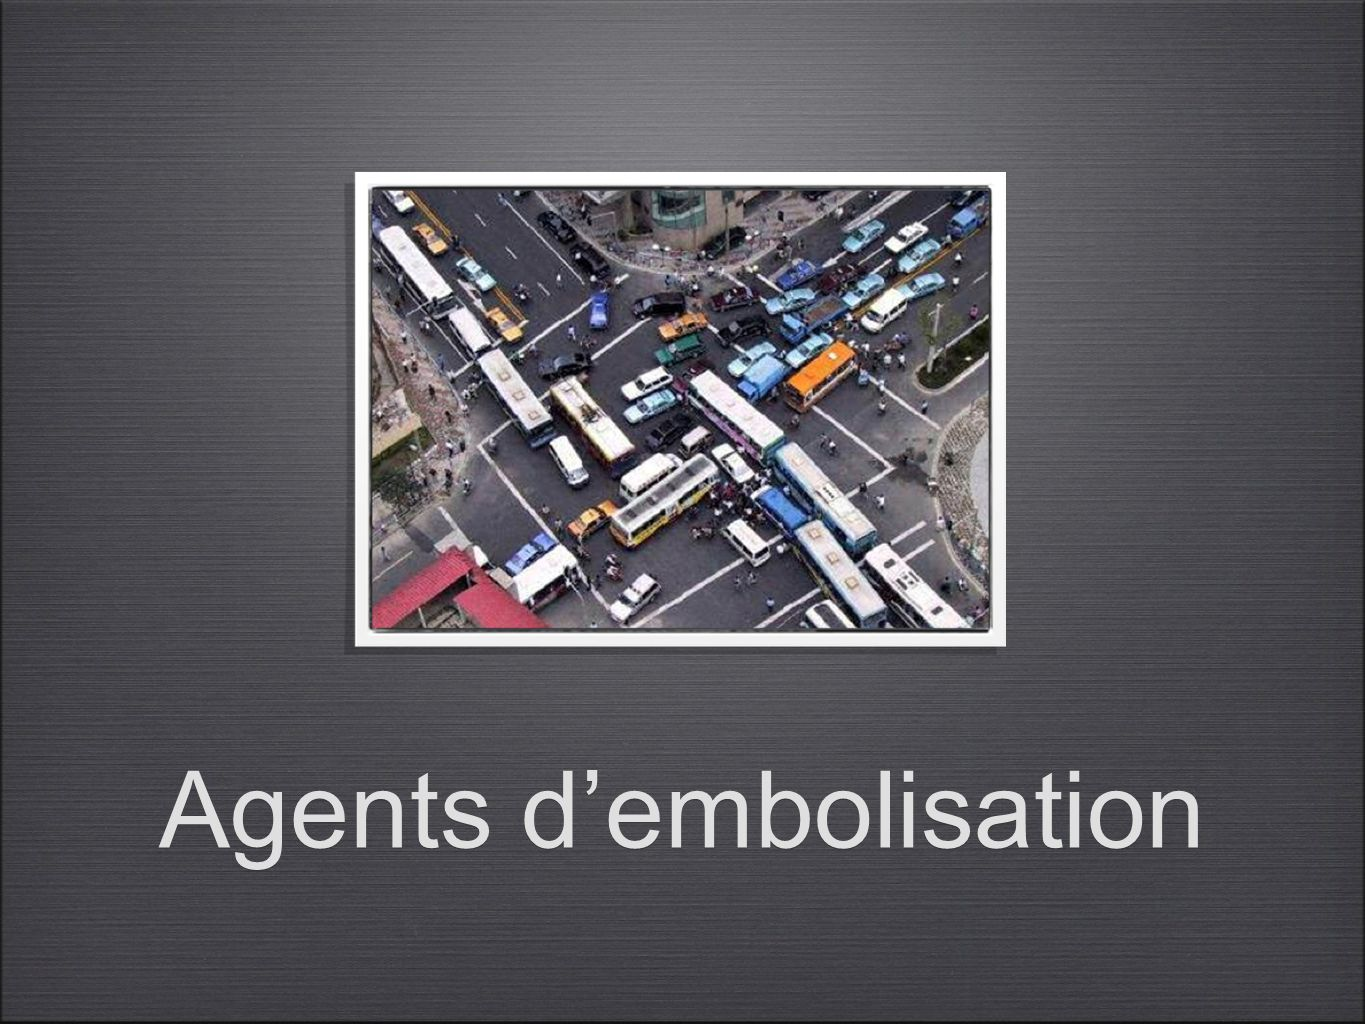 Agents d'embolisation